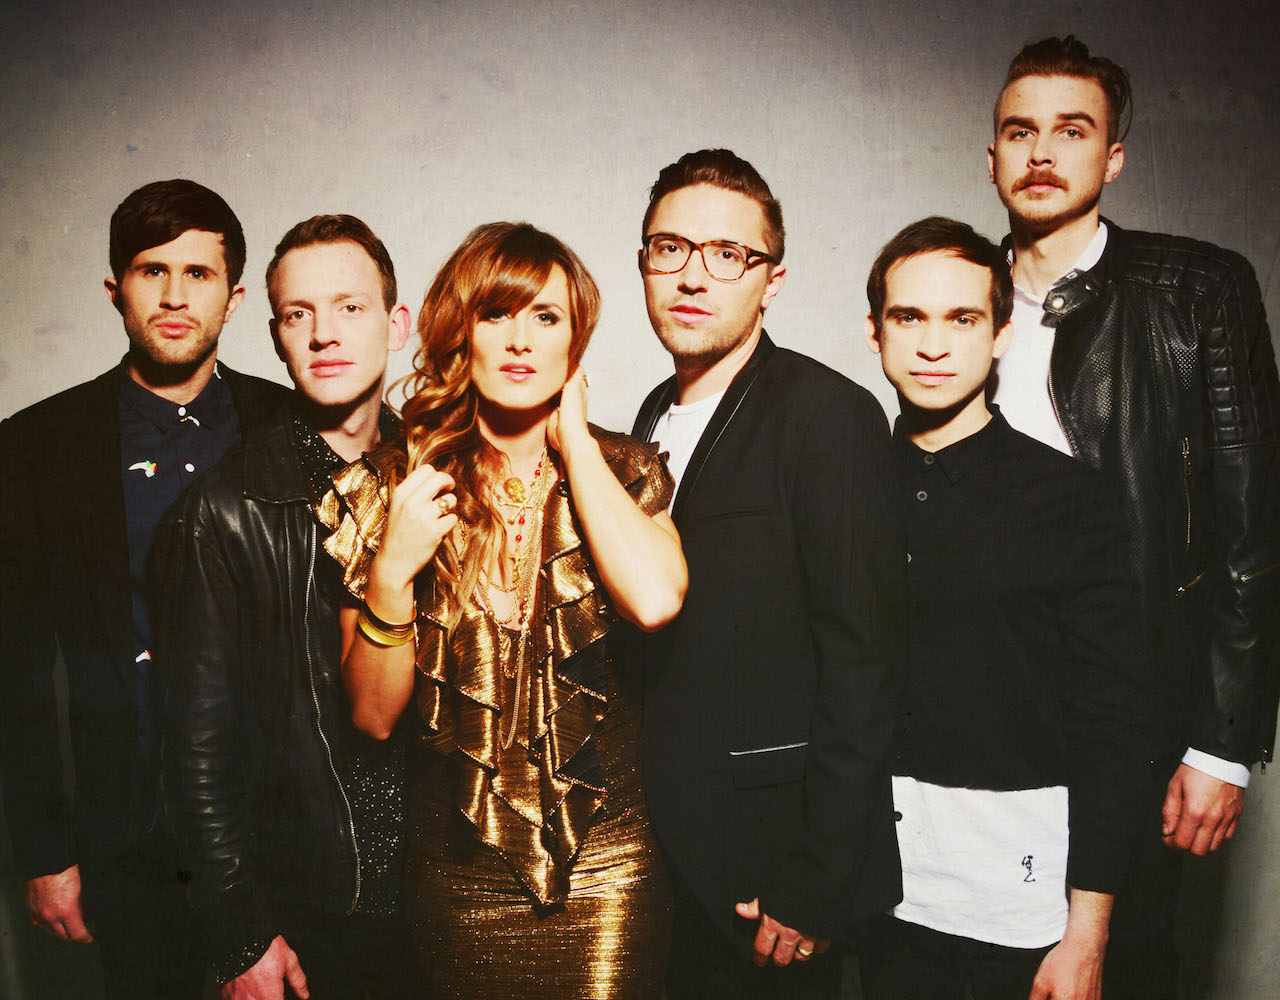 Kopecky (promo photo credit Shervin Lainez)